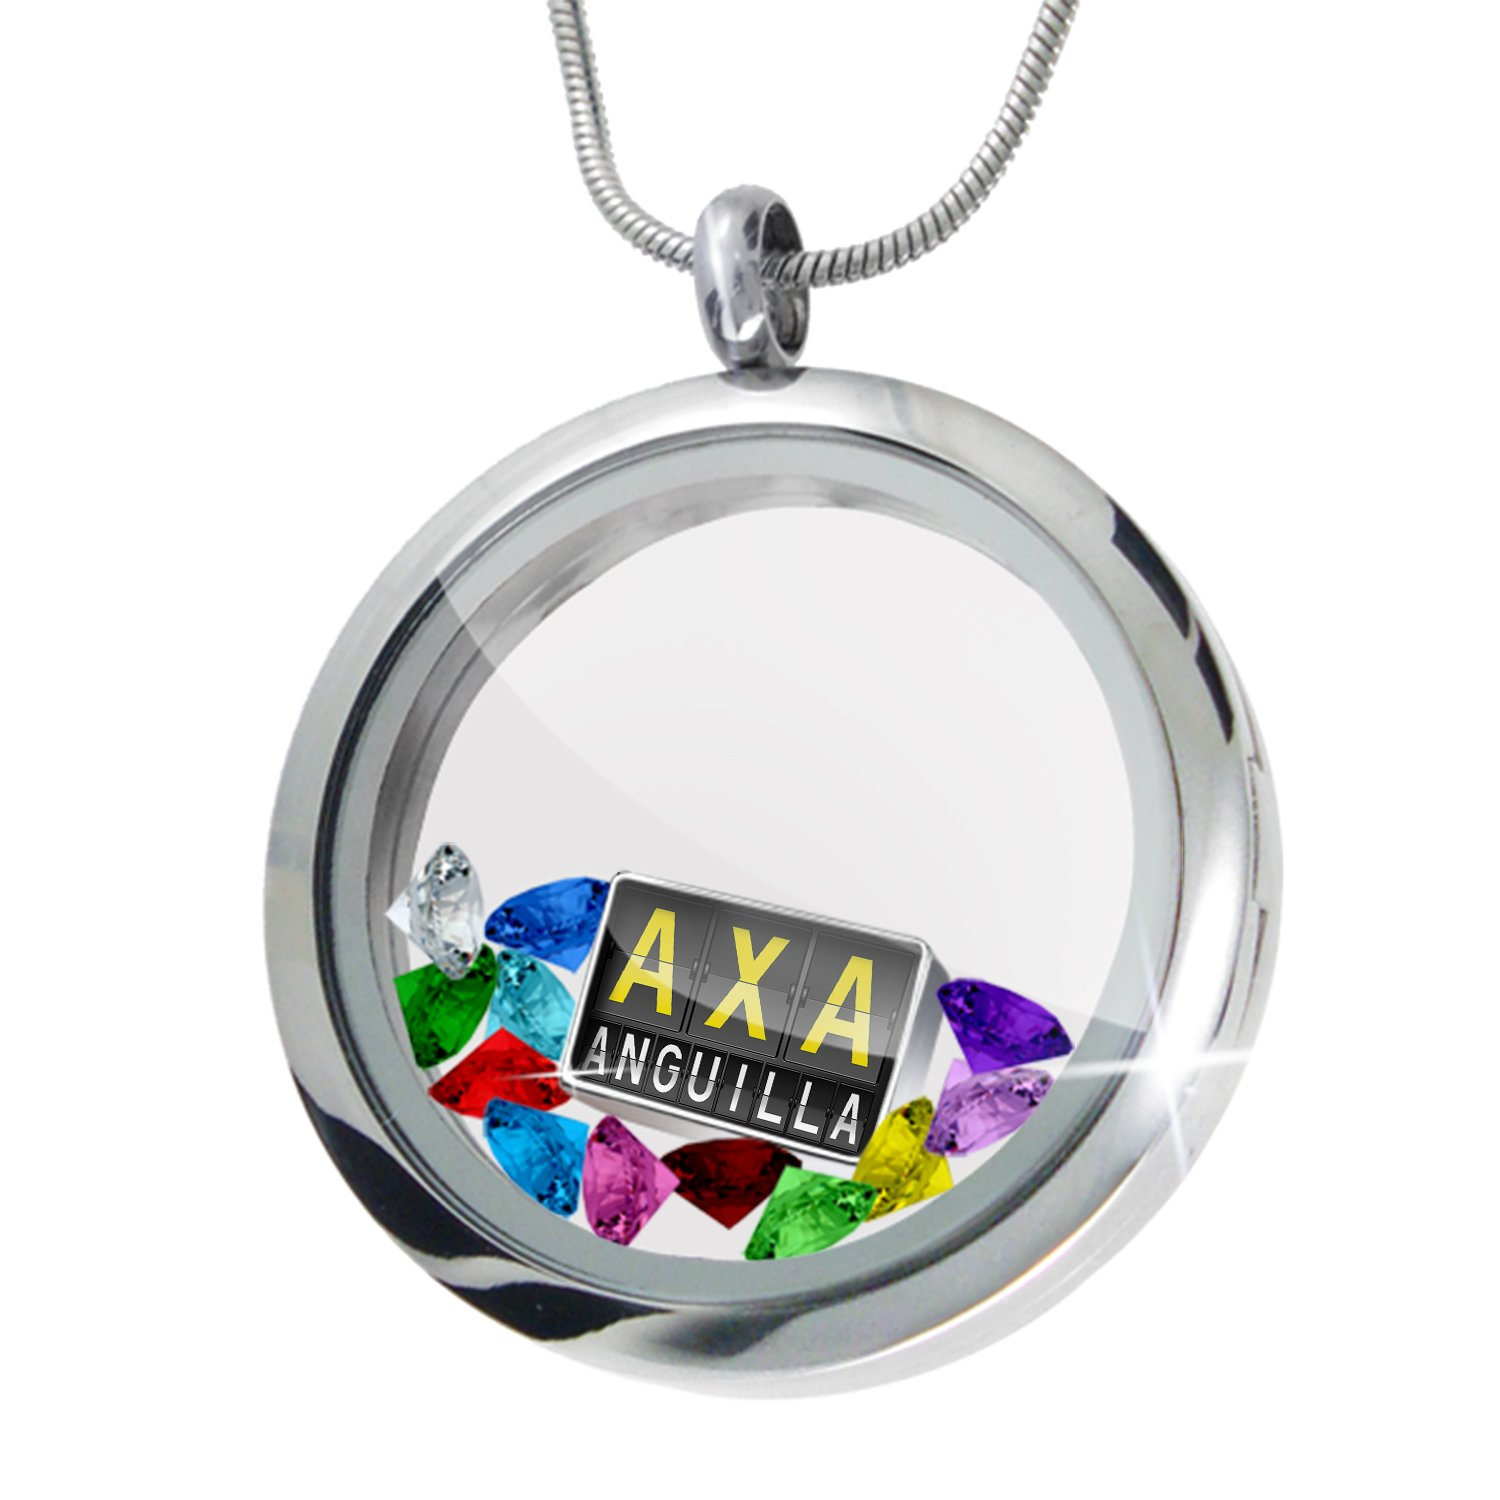 Floating Locket Set AXA Airport Code for Anguilla - NEONBLOND